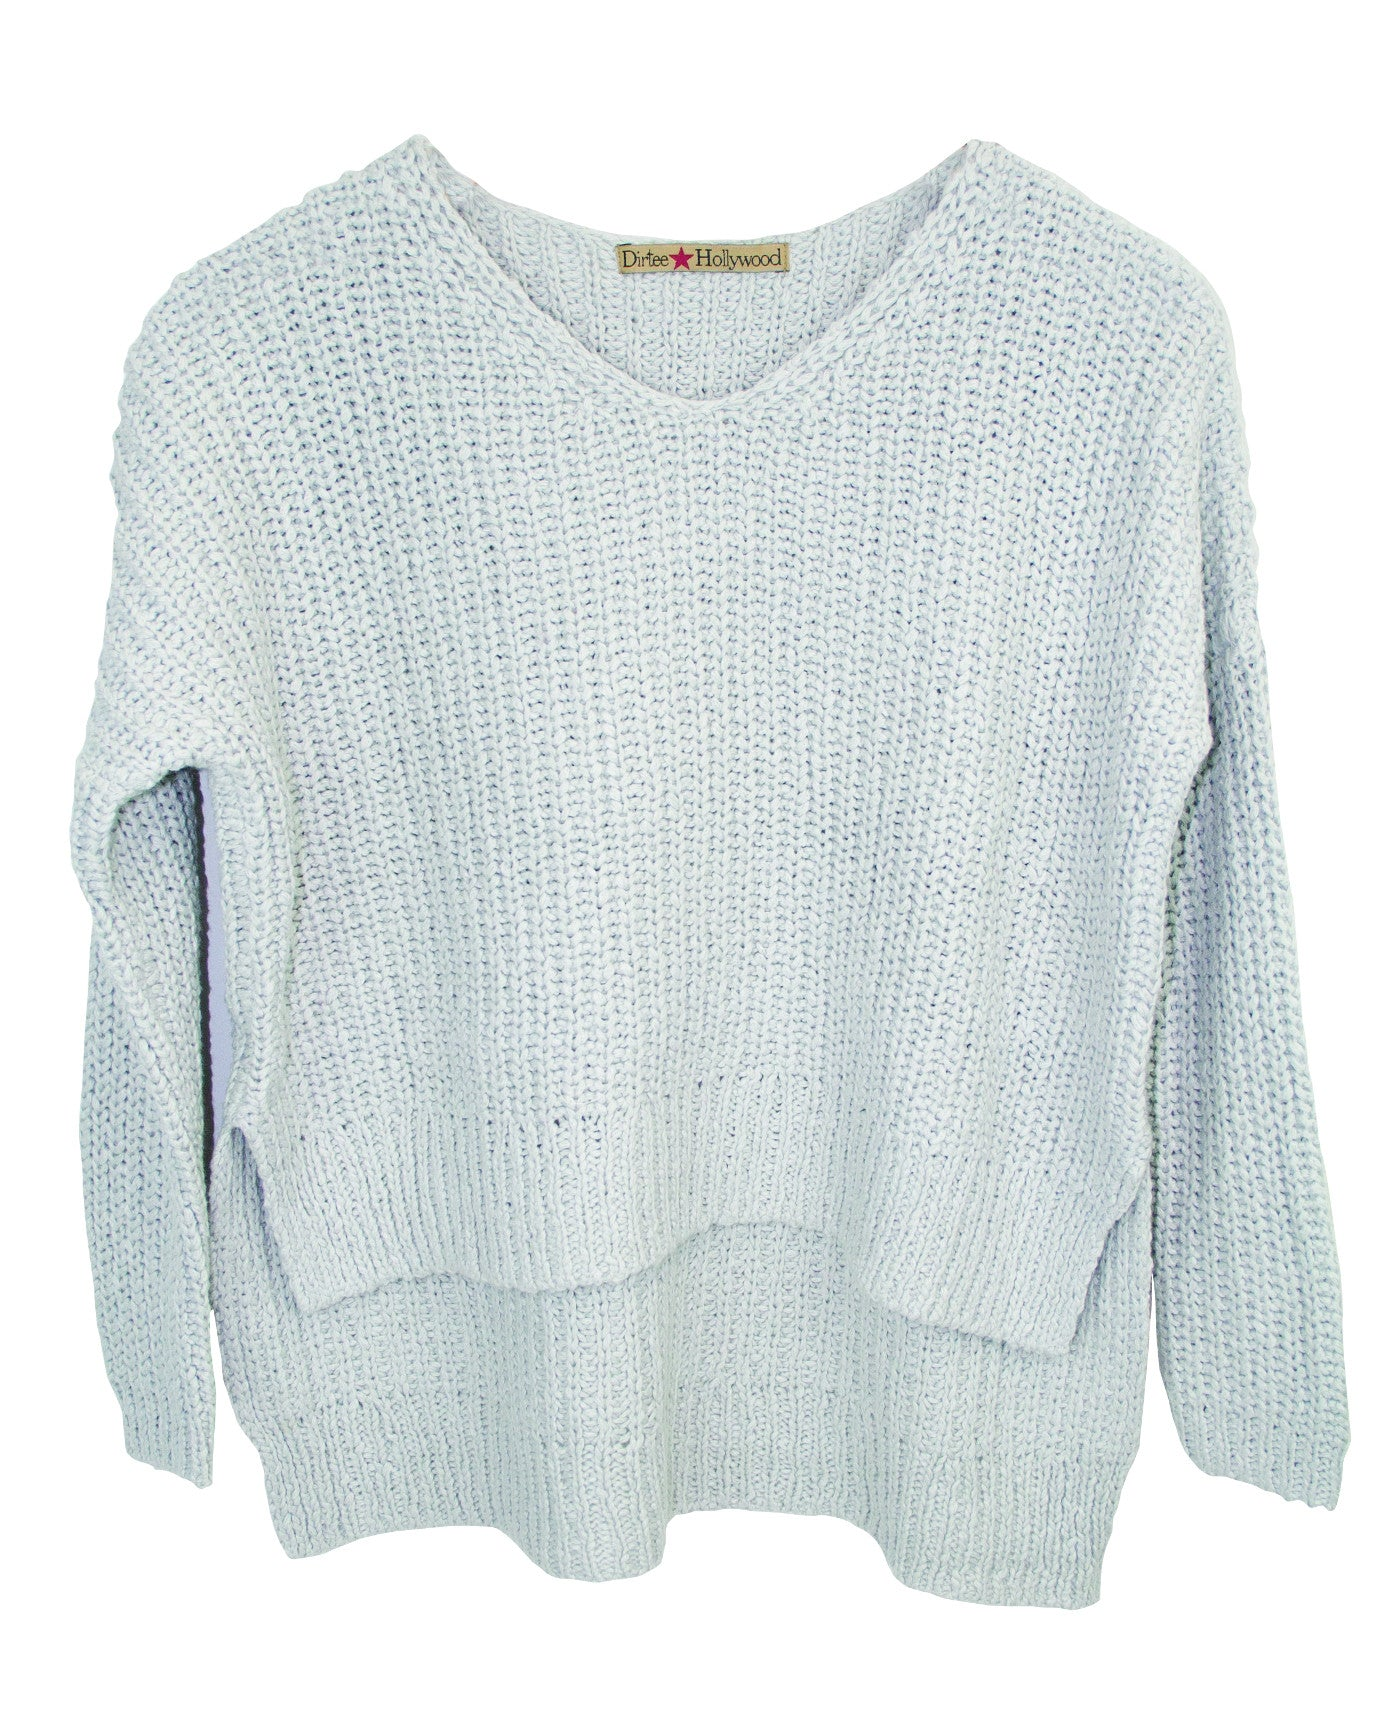 HILO PULLOVER TWEEN LONG SLEEVE SWEATER